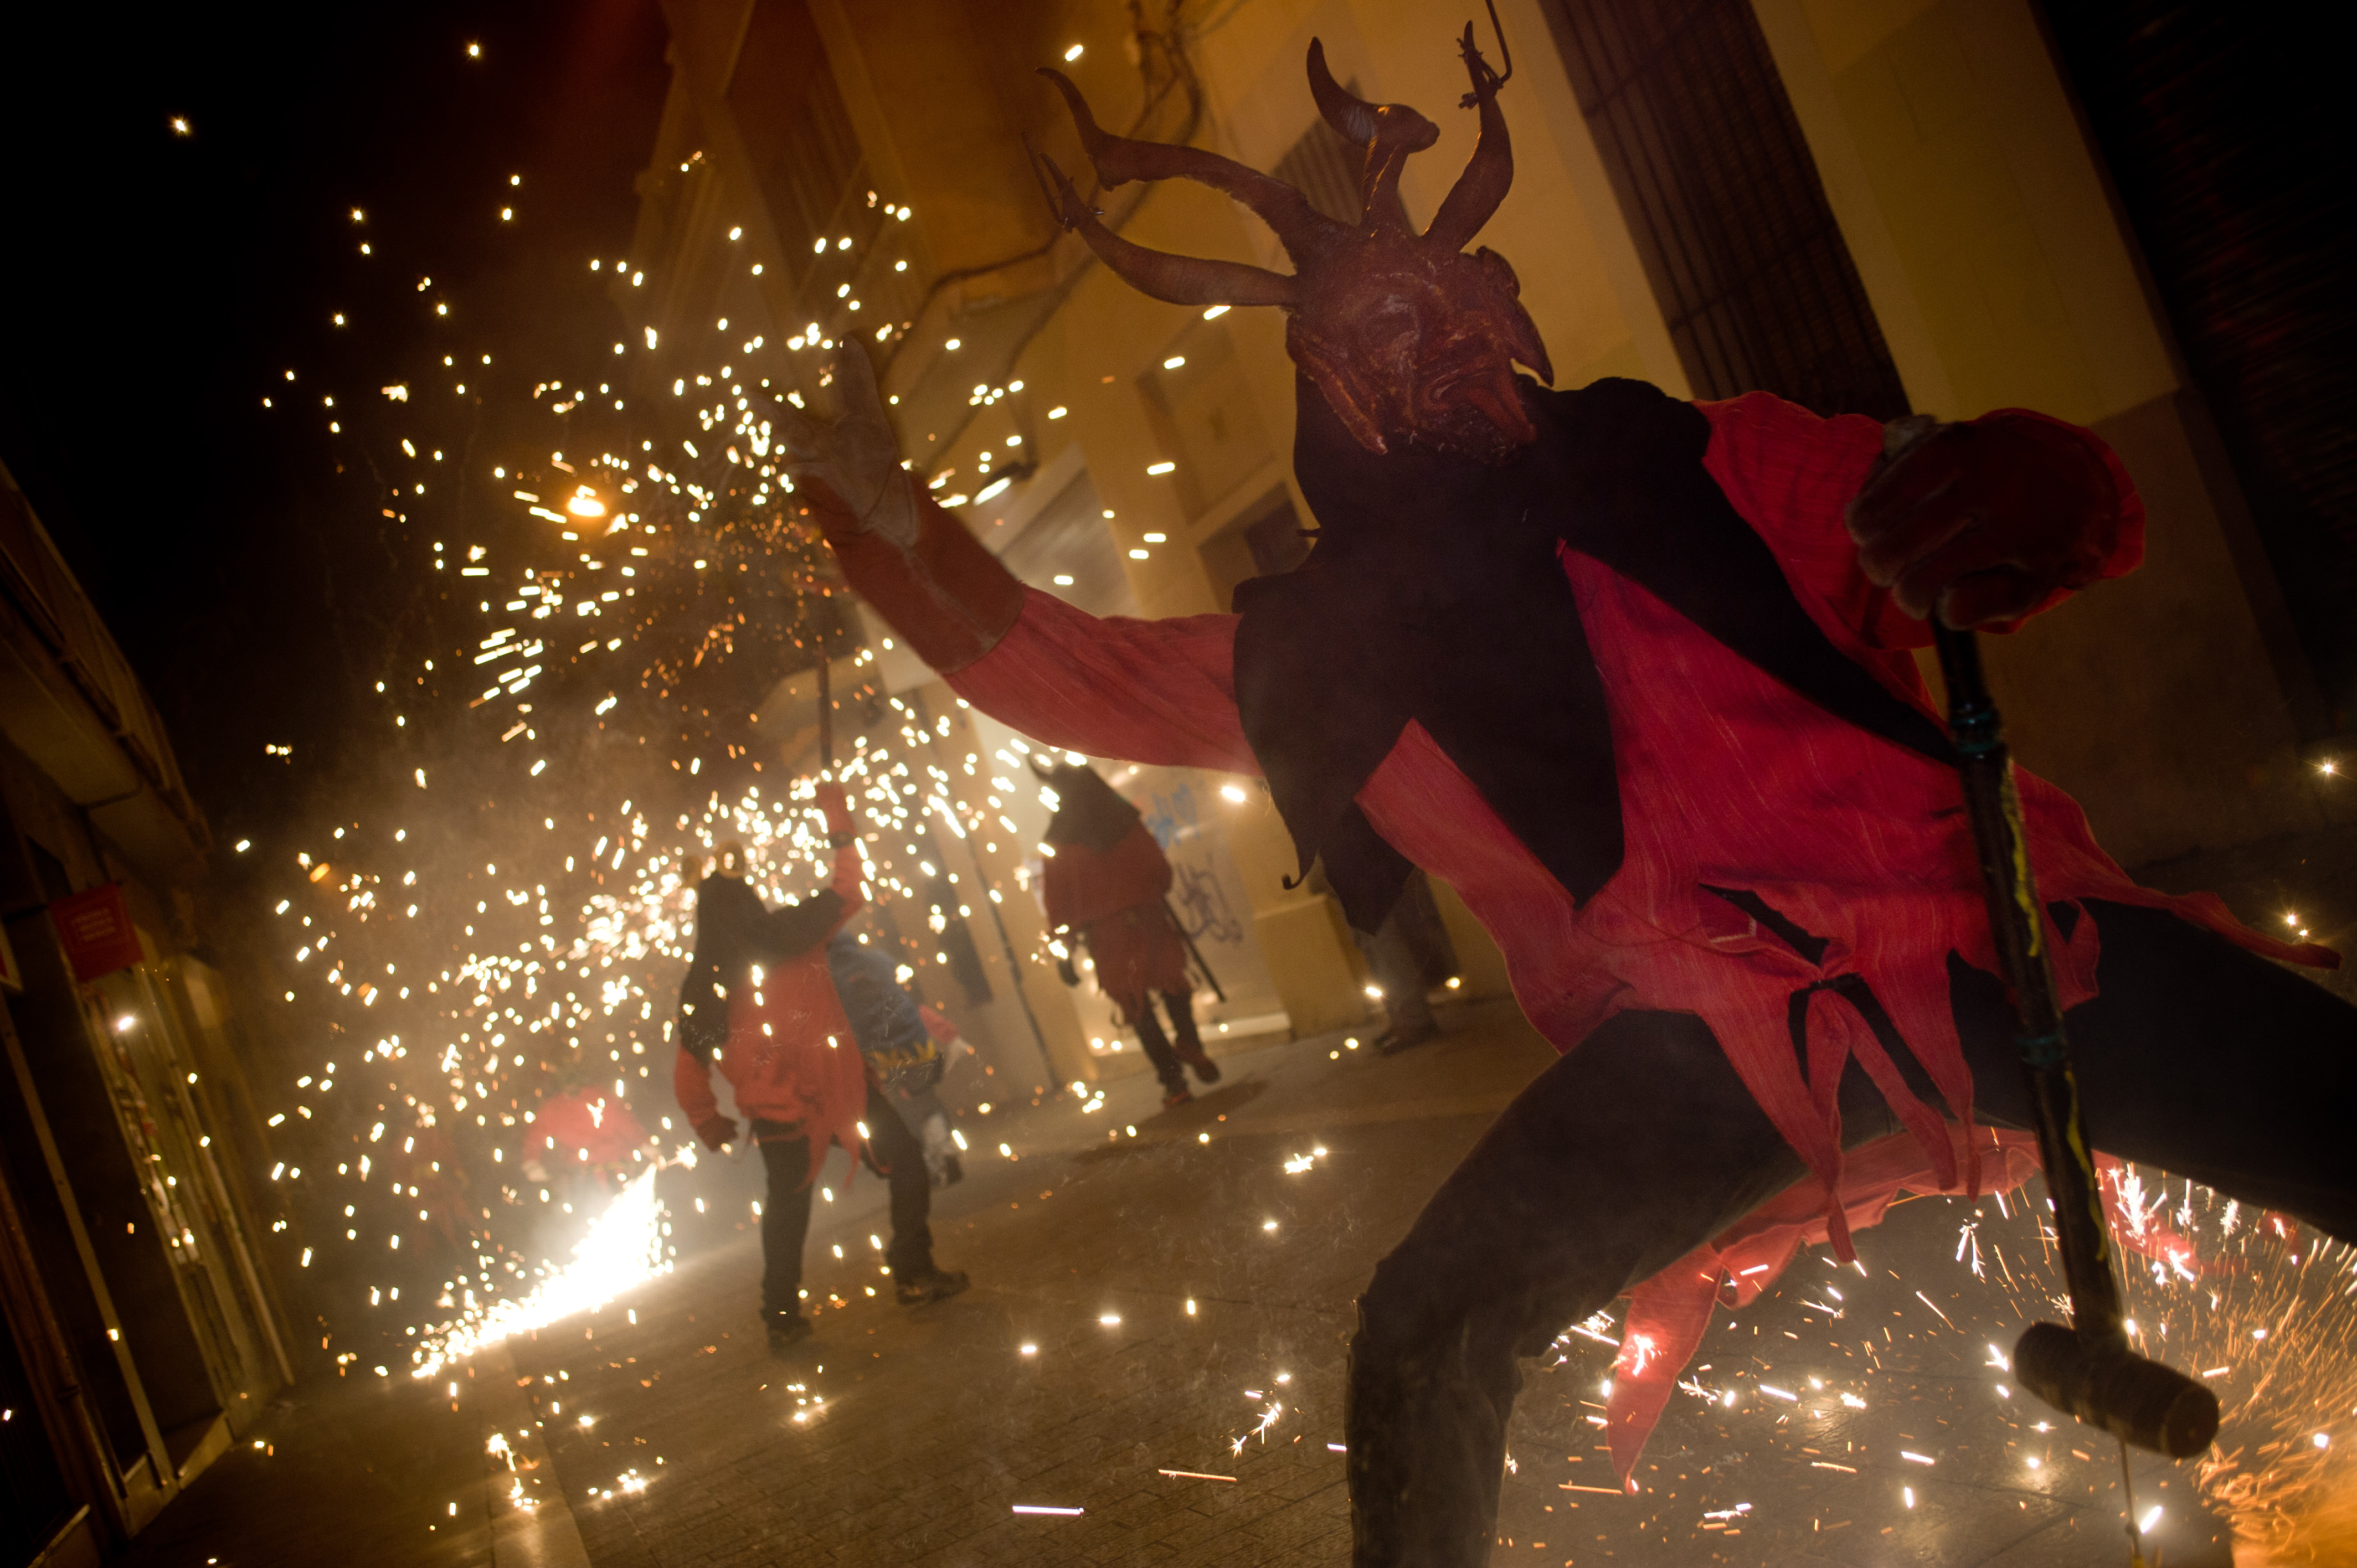 Devils dance amidst pyrotechnics at The Festival of Els Foguerons de sa Pobla, a Mallorcan celebration held in the Grcia district of Barcelona.